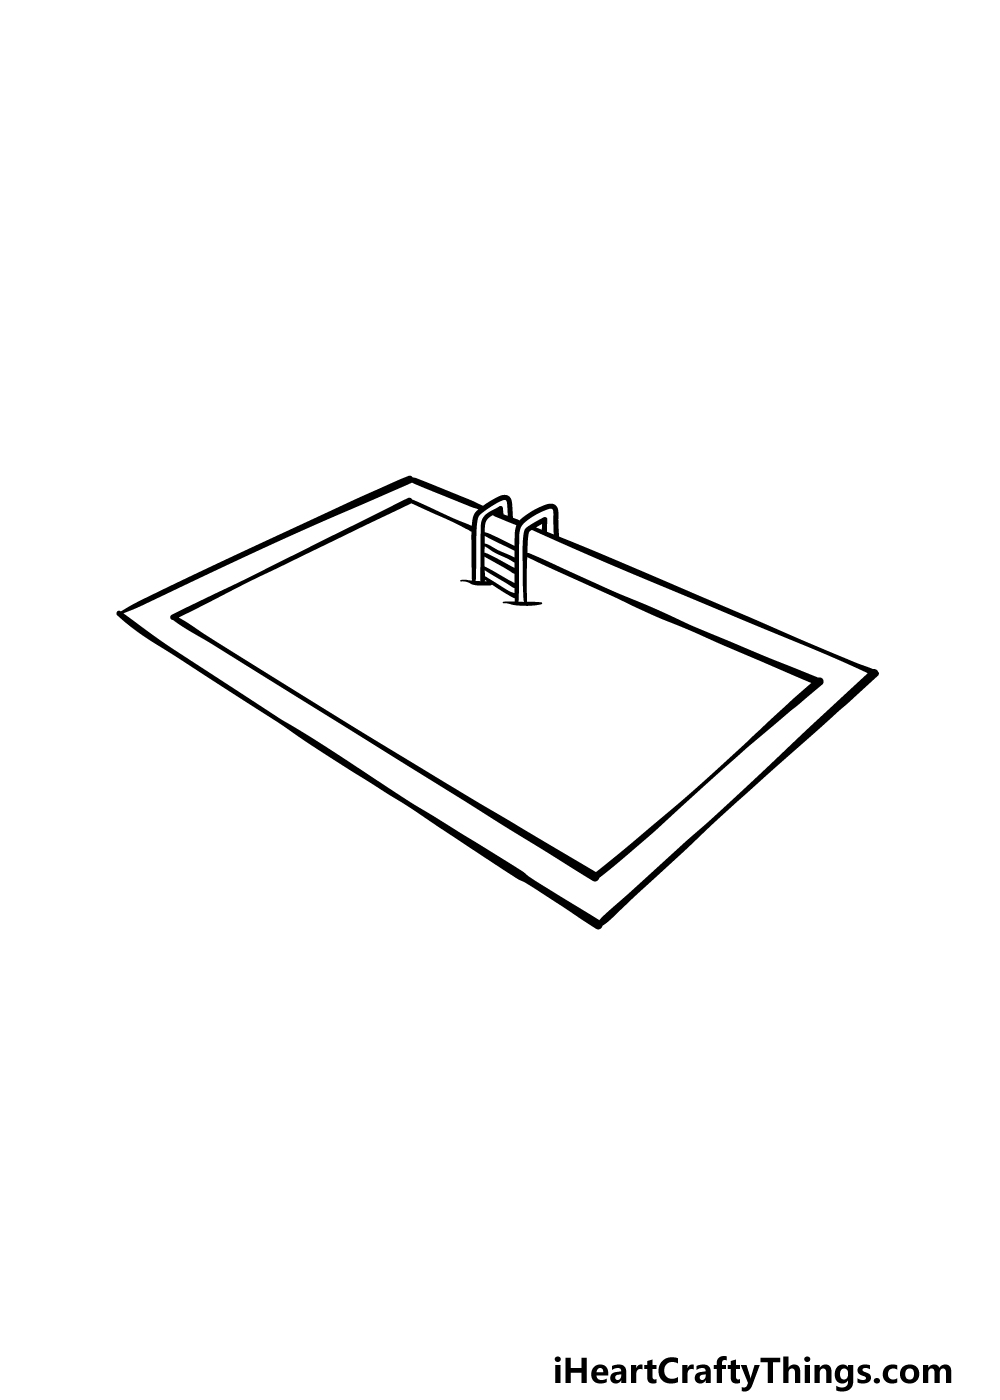 drawing a pool step 3